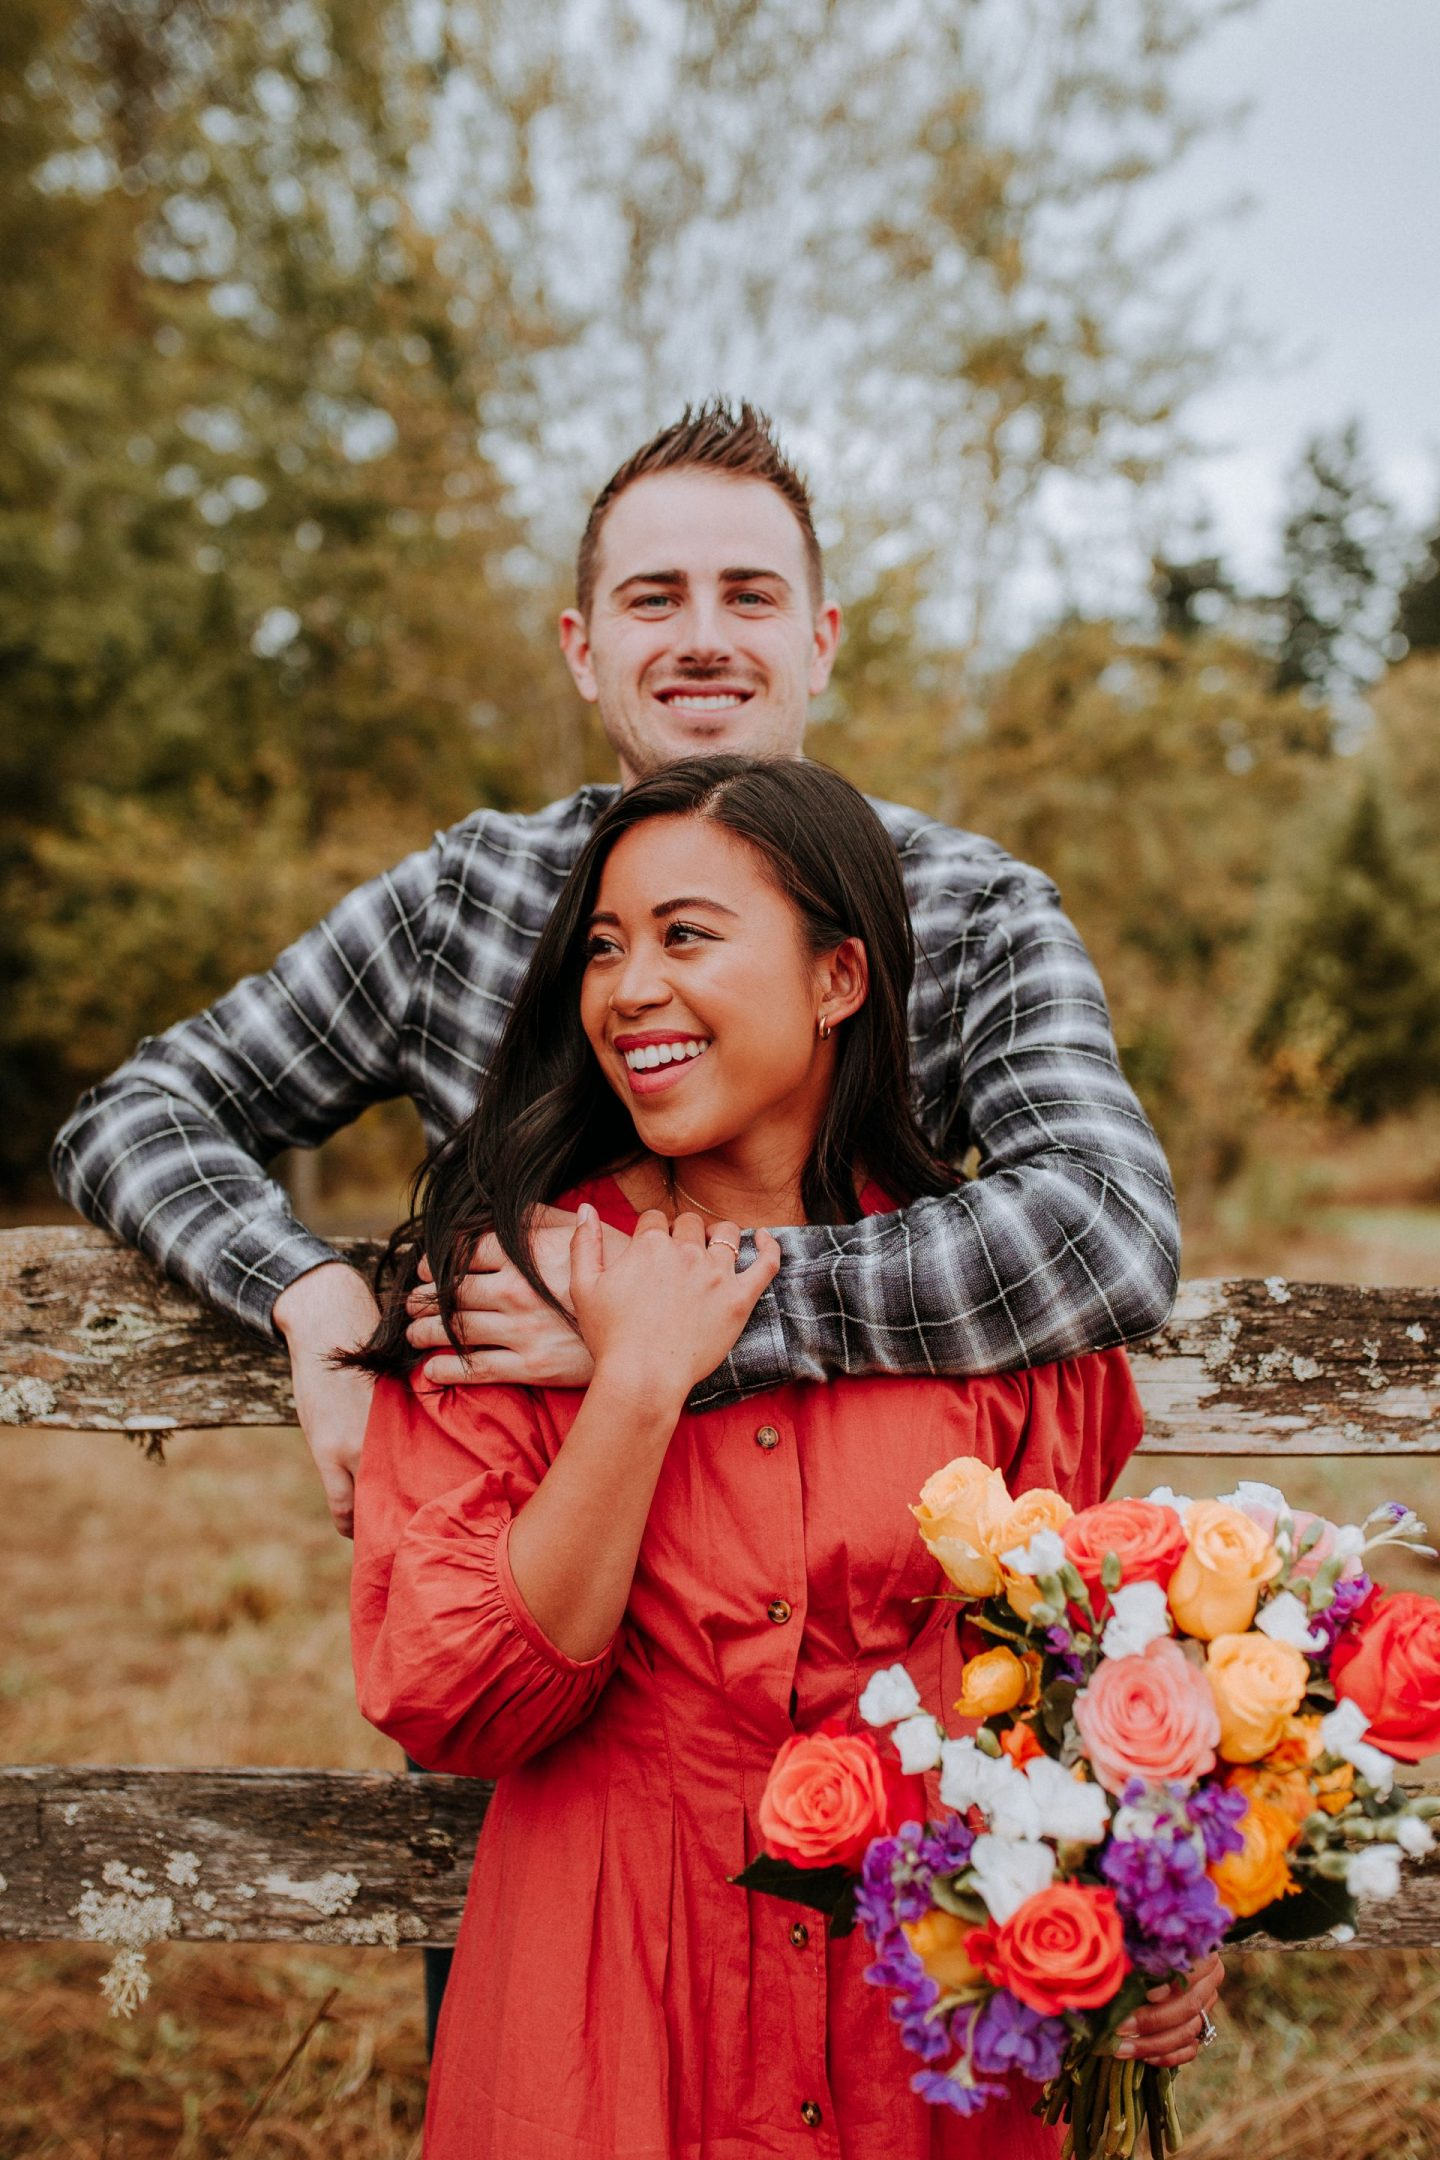 one year engagement with urbanstems - engagement photos - engagement photo ideas - bouquets for engagement photos - how to pose for engagement photos